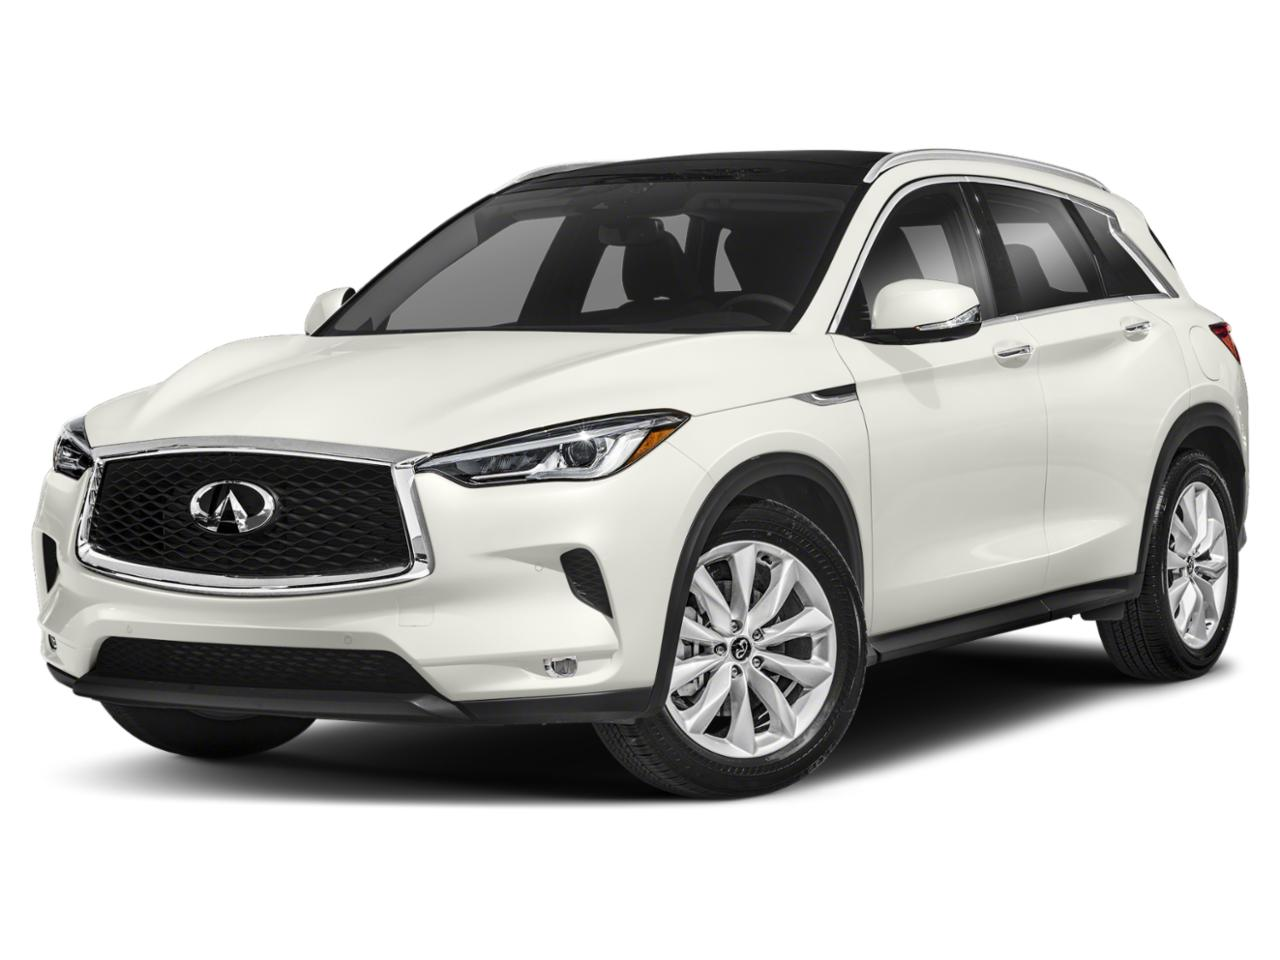 2021 INFINITI QX50 Vehicle Photo in Grapevine, TX 76051